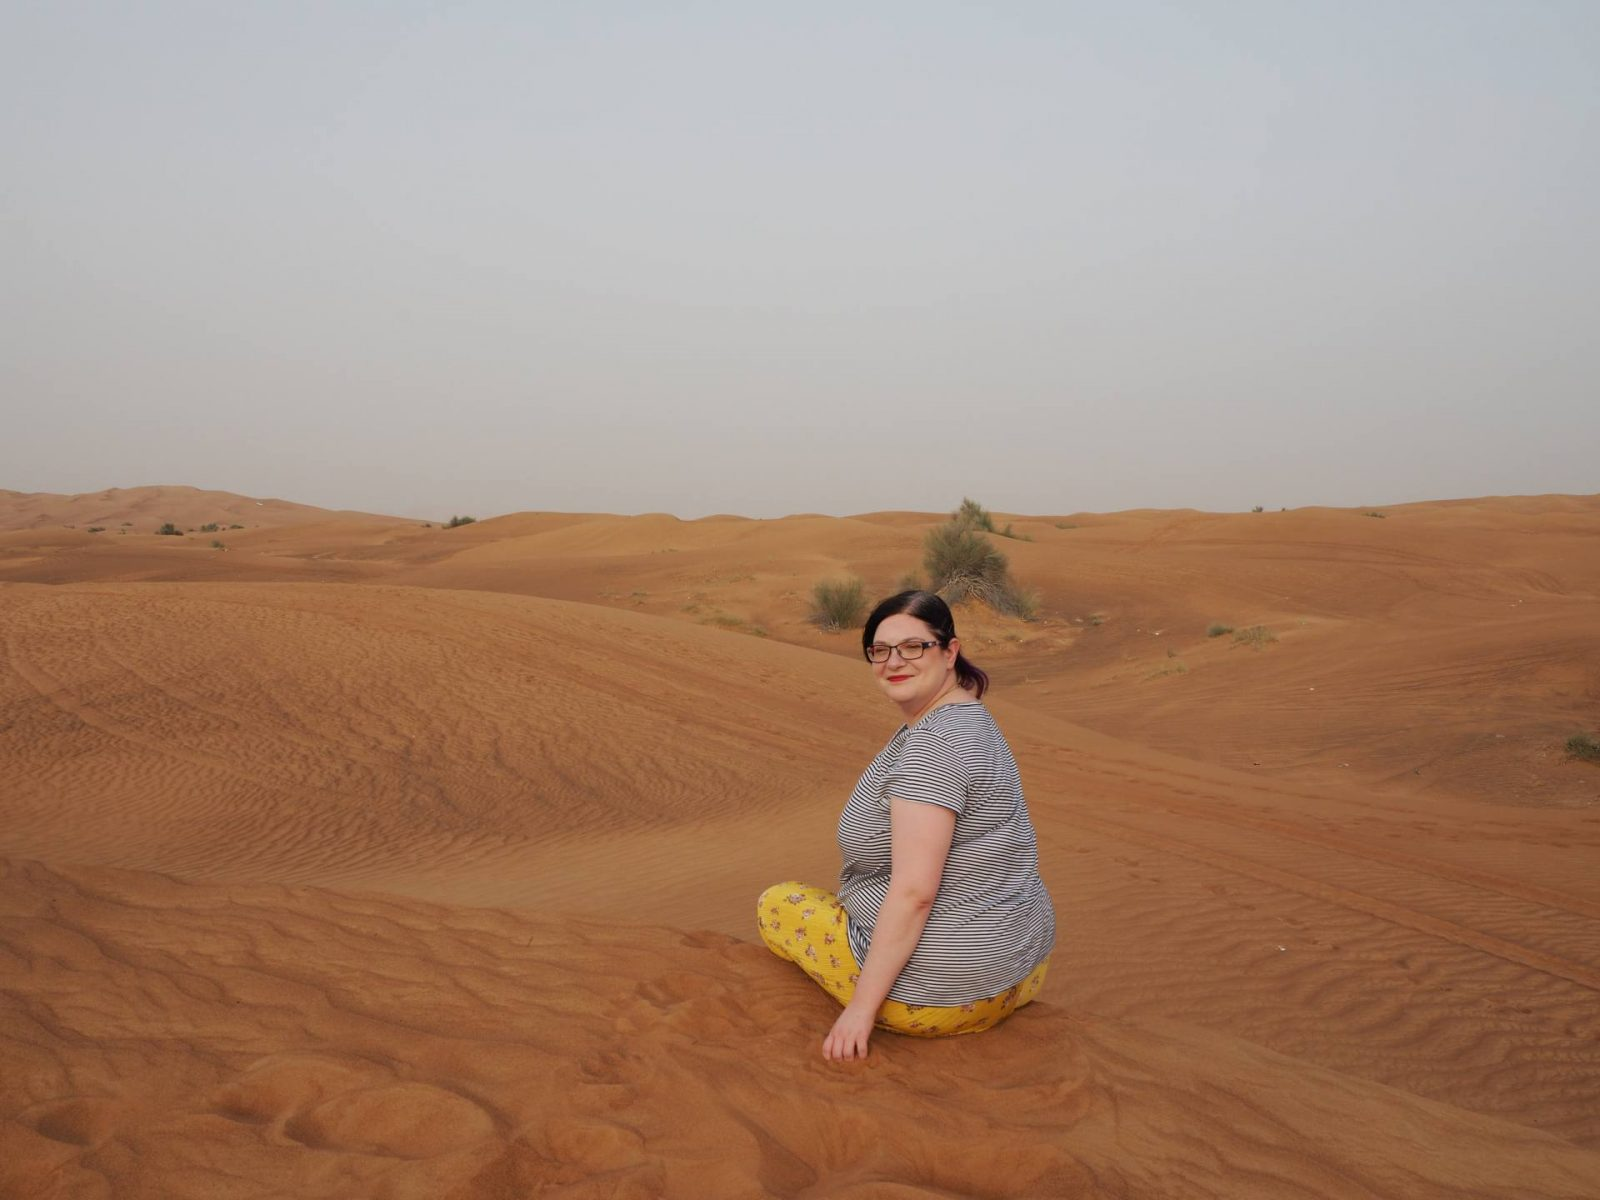 Last Year's Girl sitting on top of a sand dune as the desert stretches out in front of her